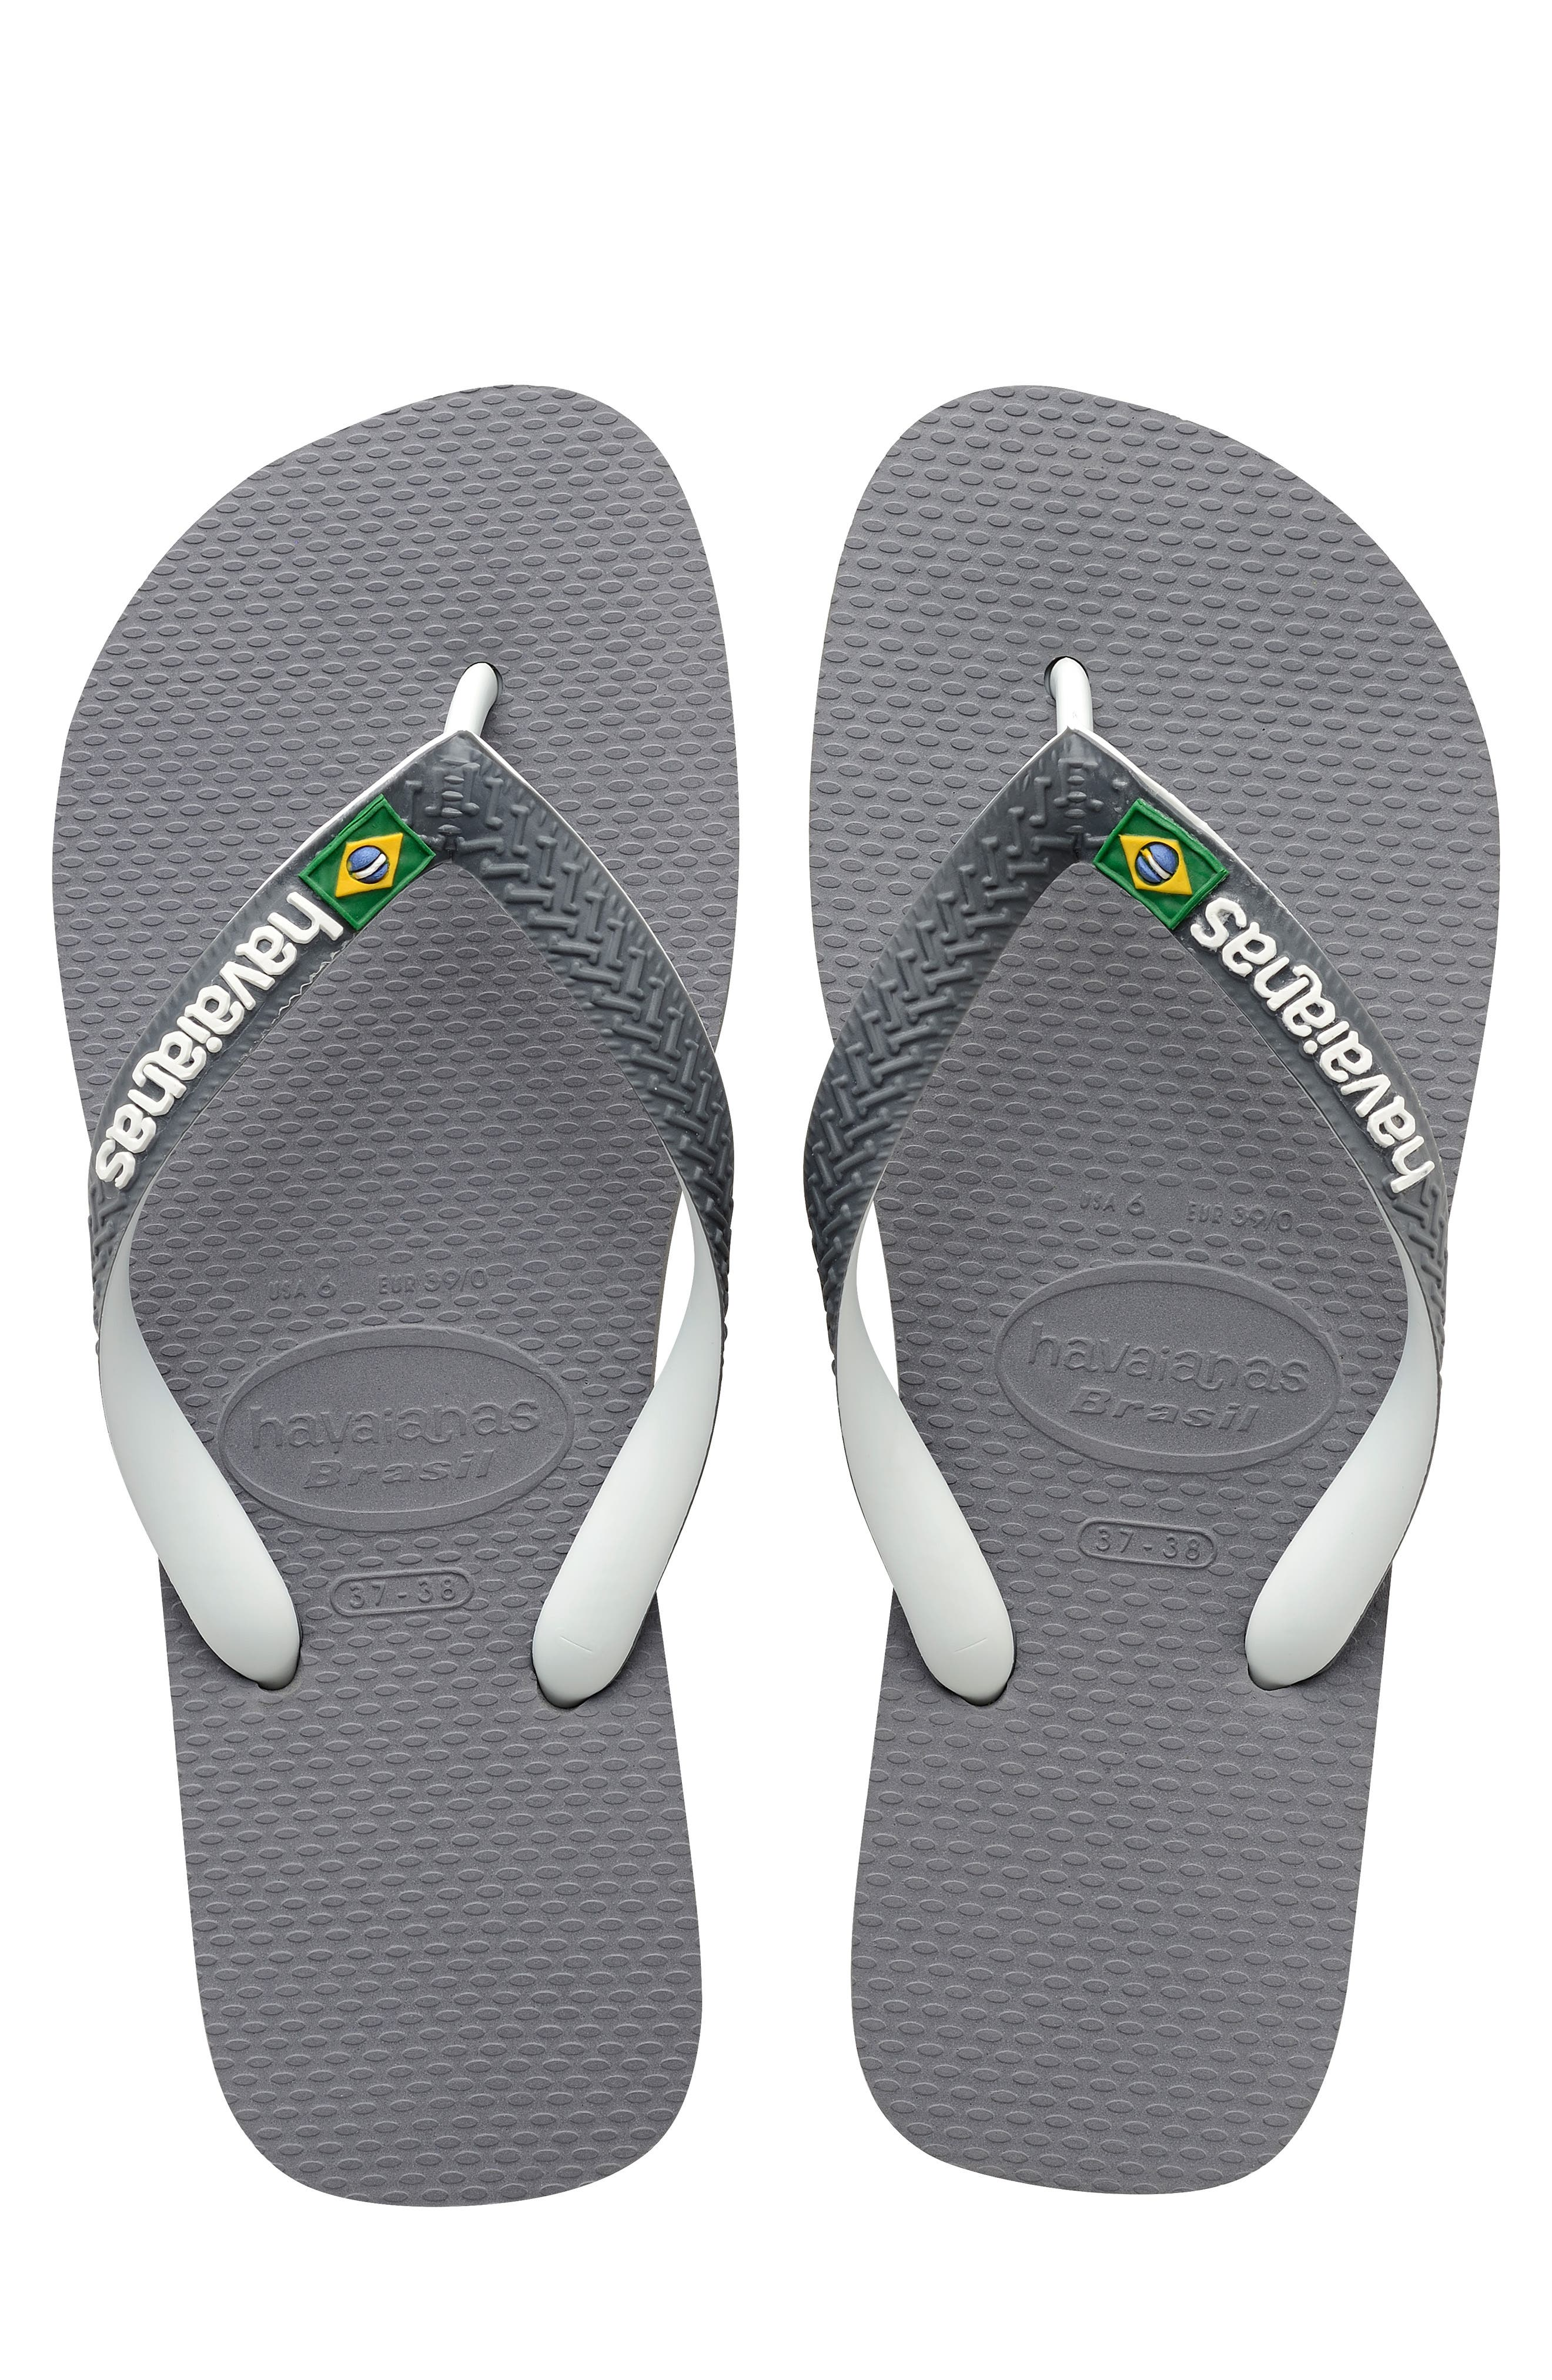 9da8ea87b Havaianas - Men s Casual Fashion Shoes and Sneakers